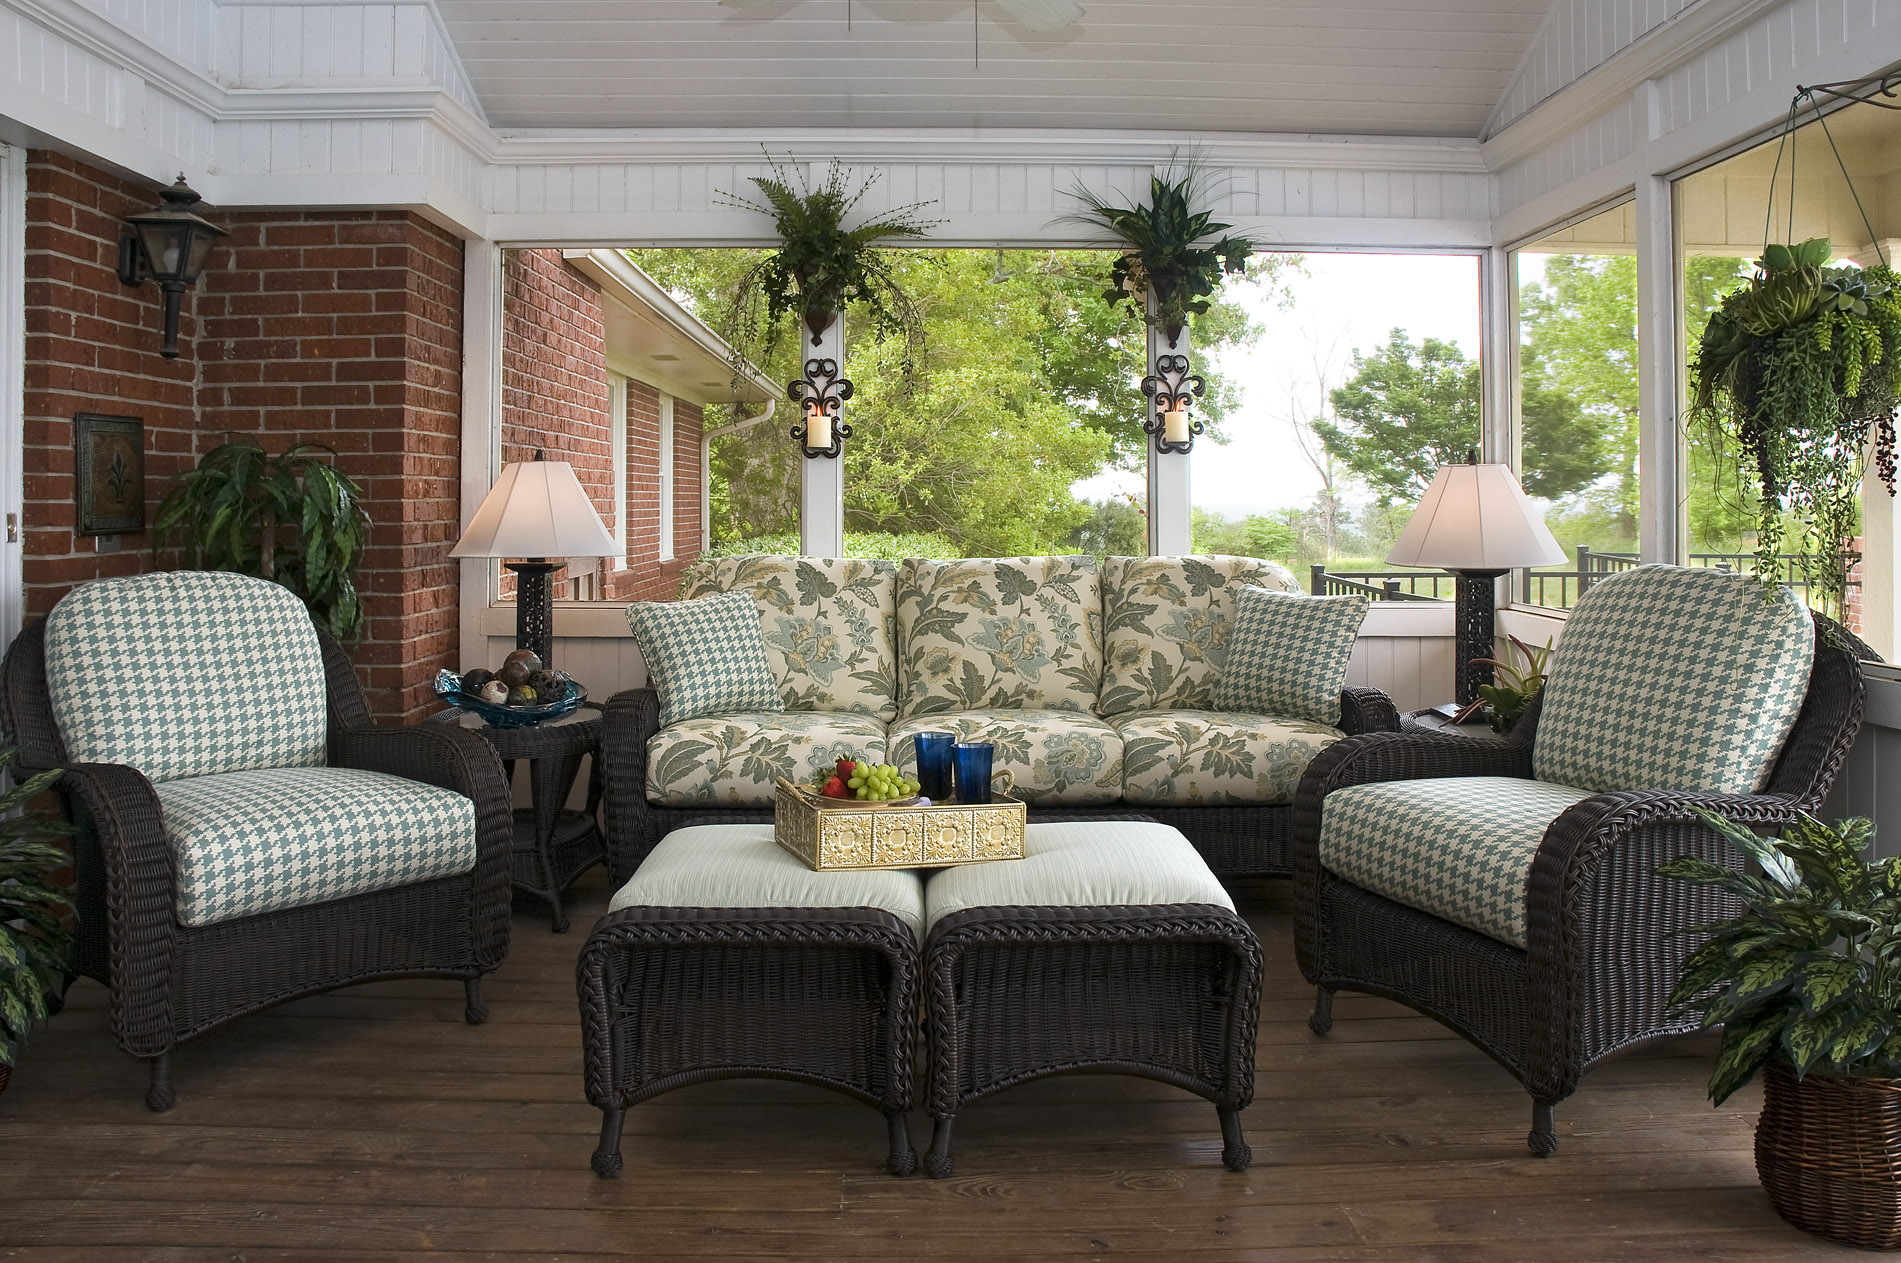 Outdoor Decorating at its finest | Catherine Pulcine - CPI ... on Living Spaces Patio Set id=87137